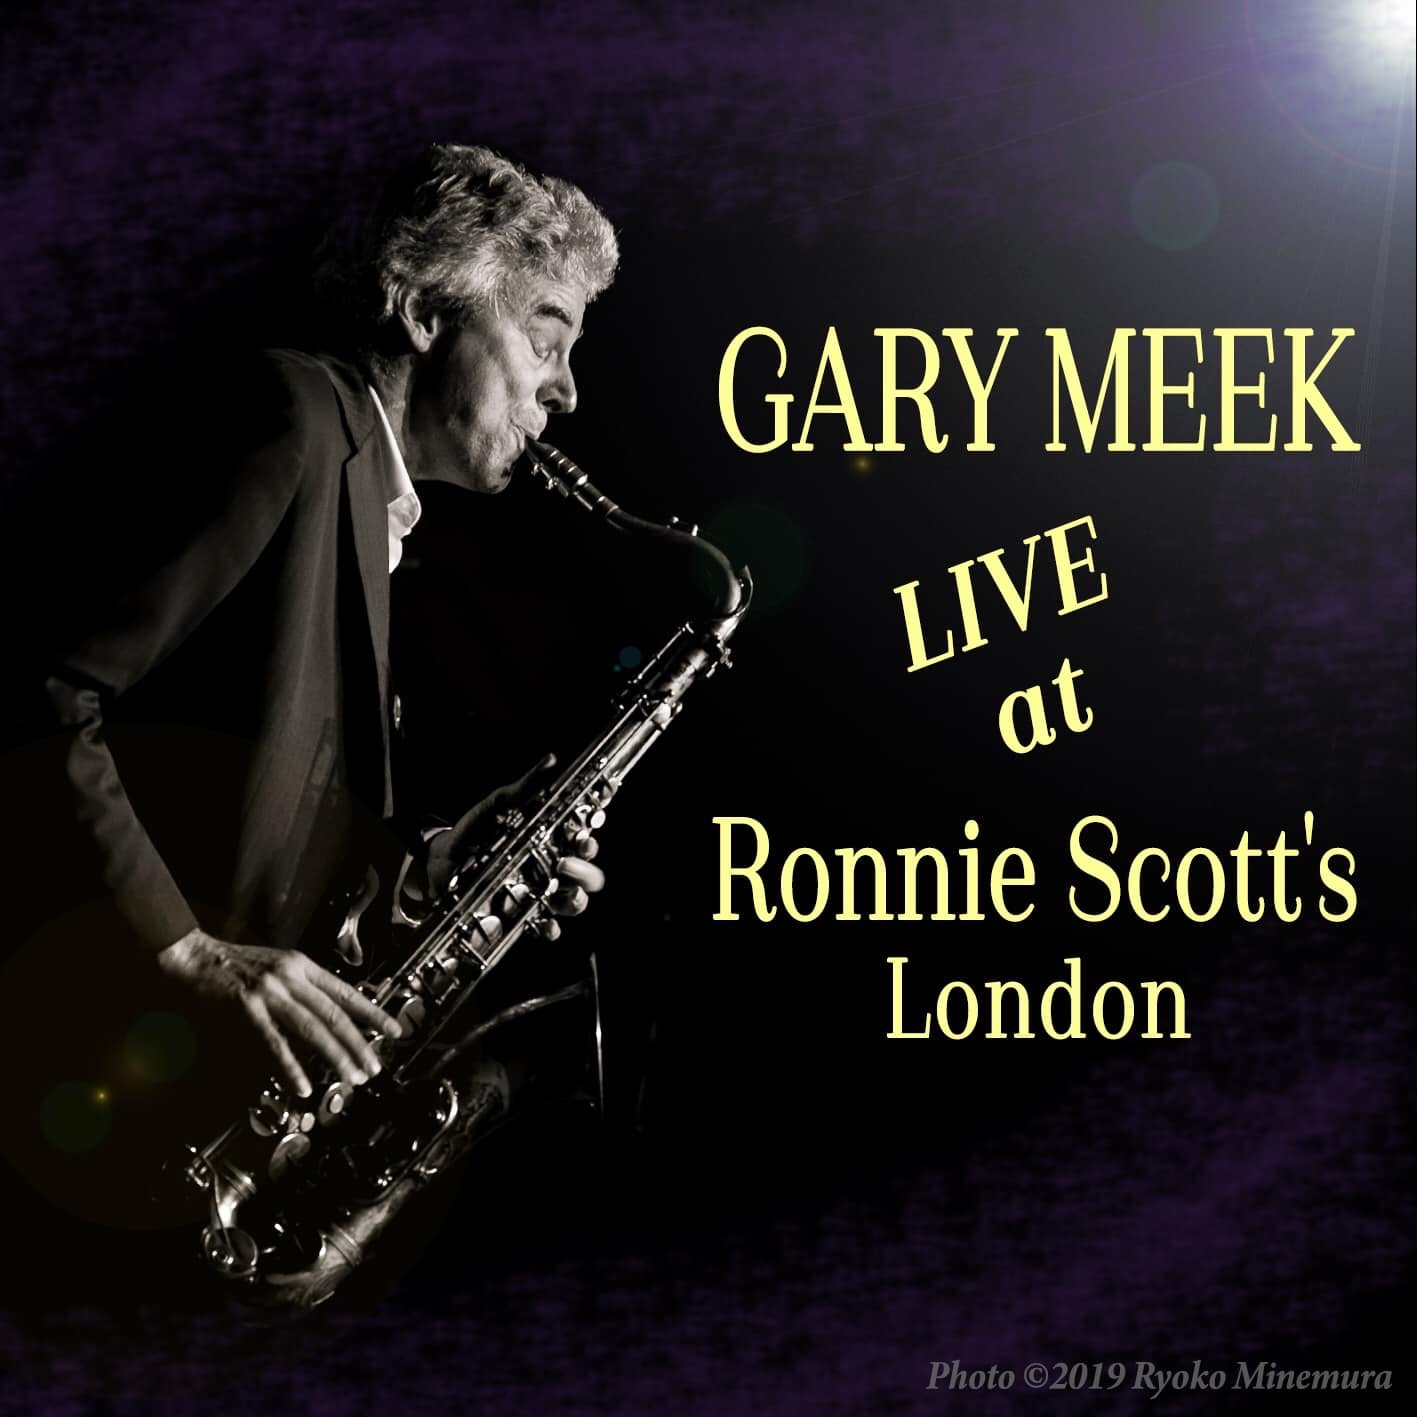 Gary Meek<br/>Live at Ronnie Scott's